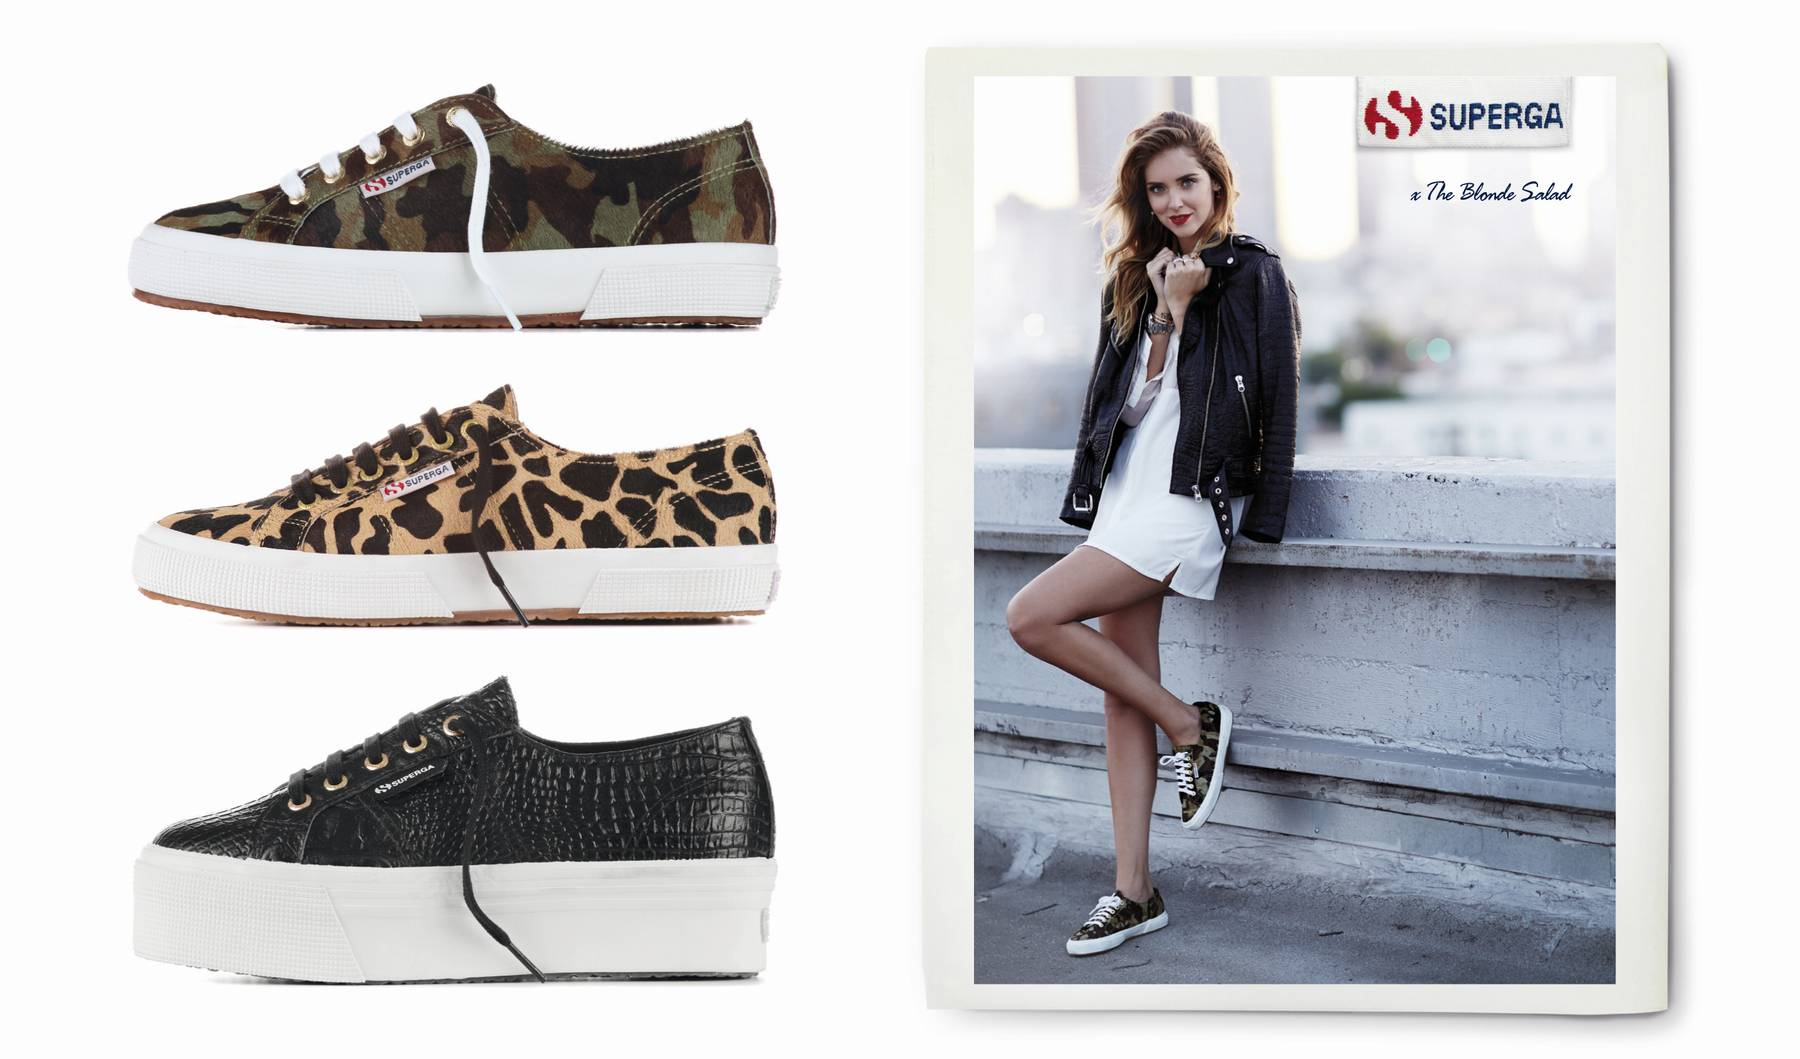 Superga for The Blonde Salad My new capsule collection